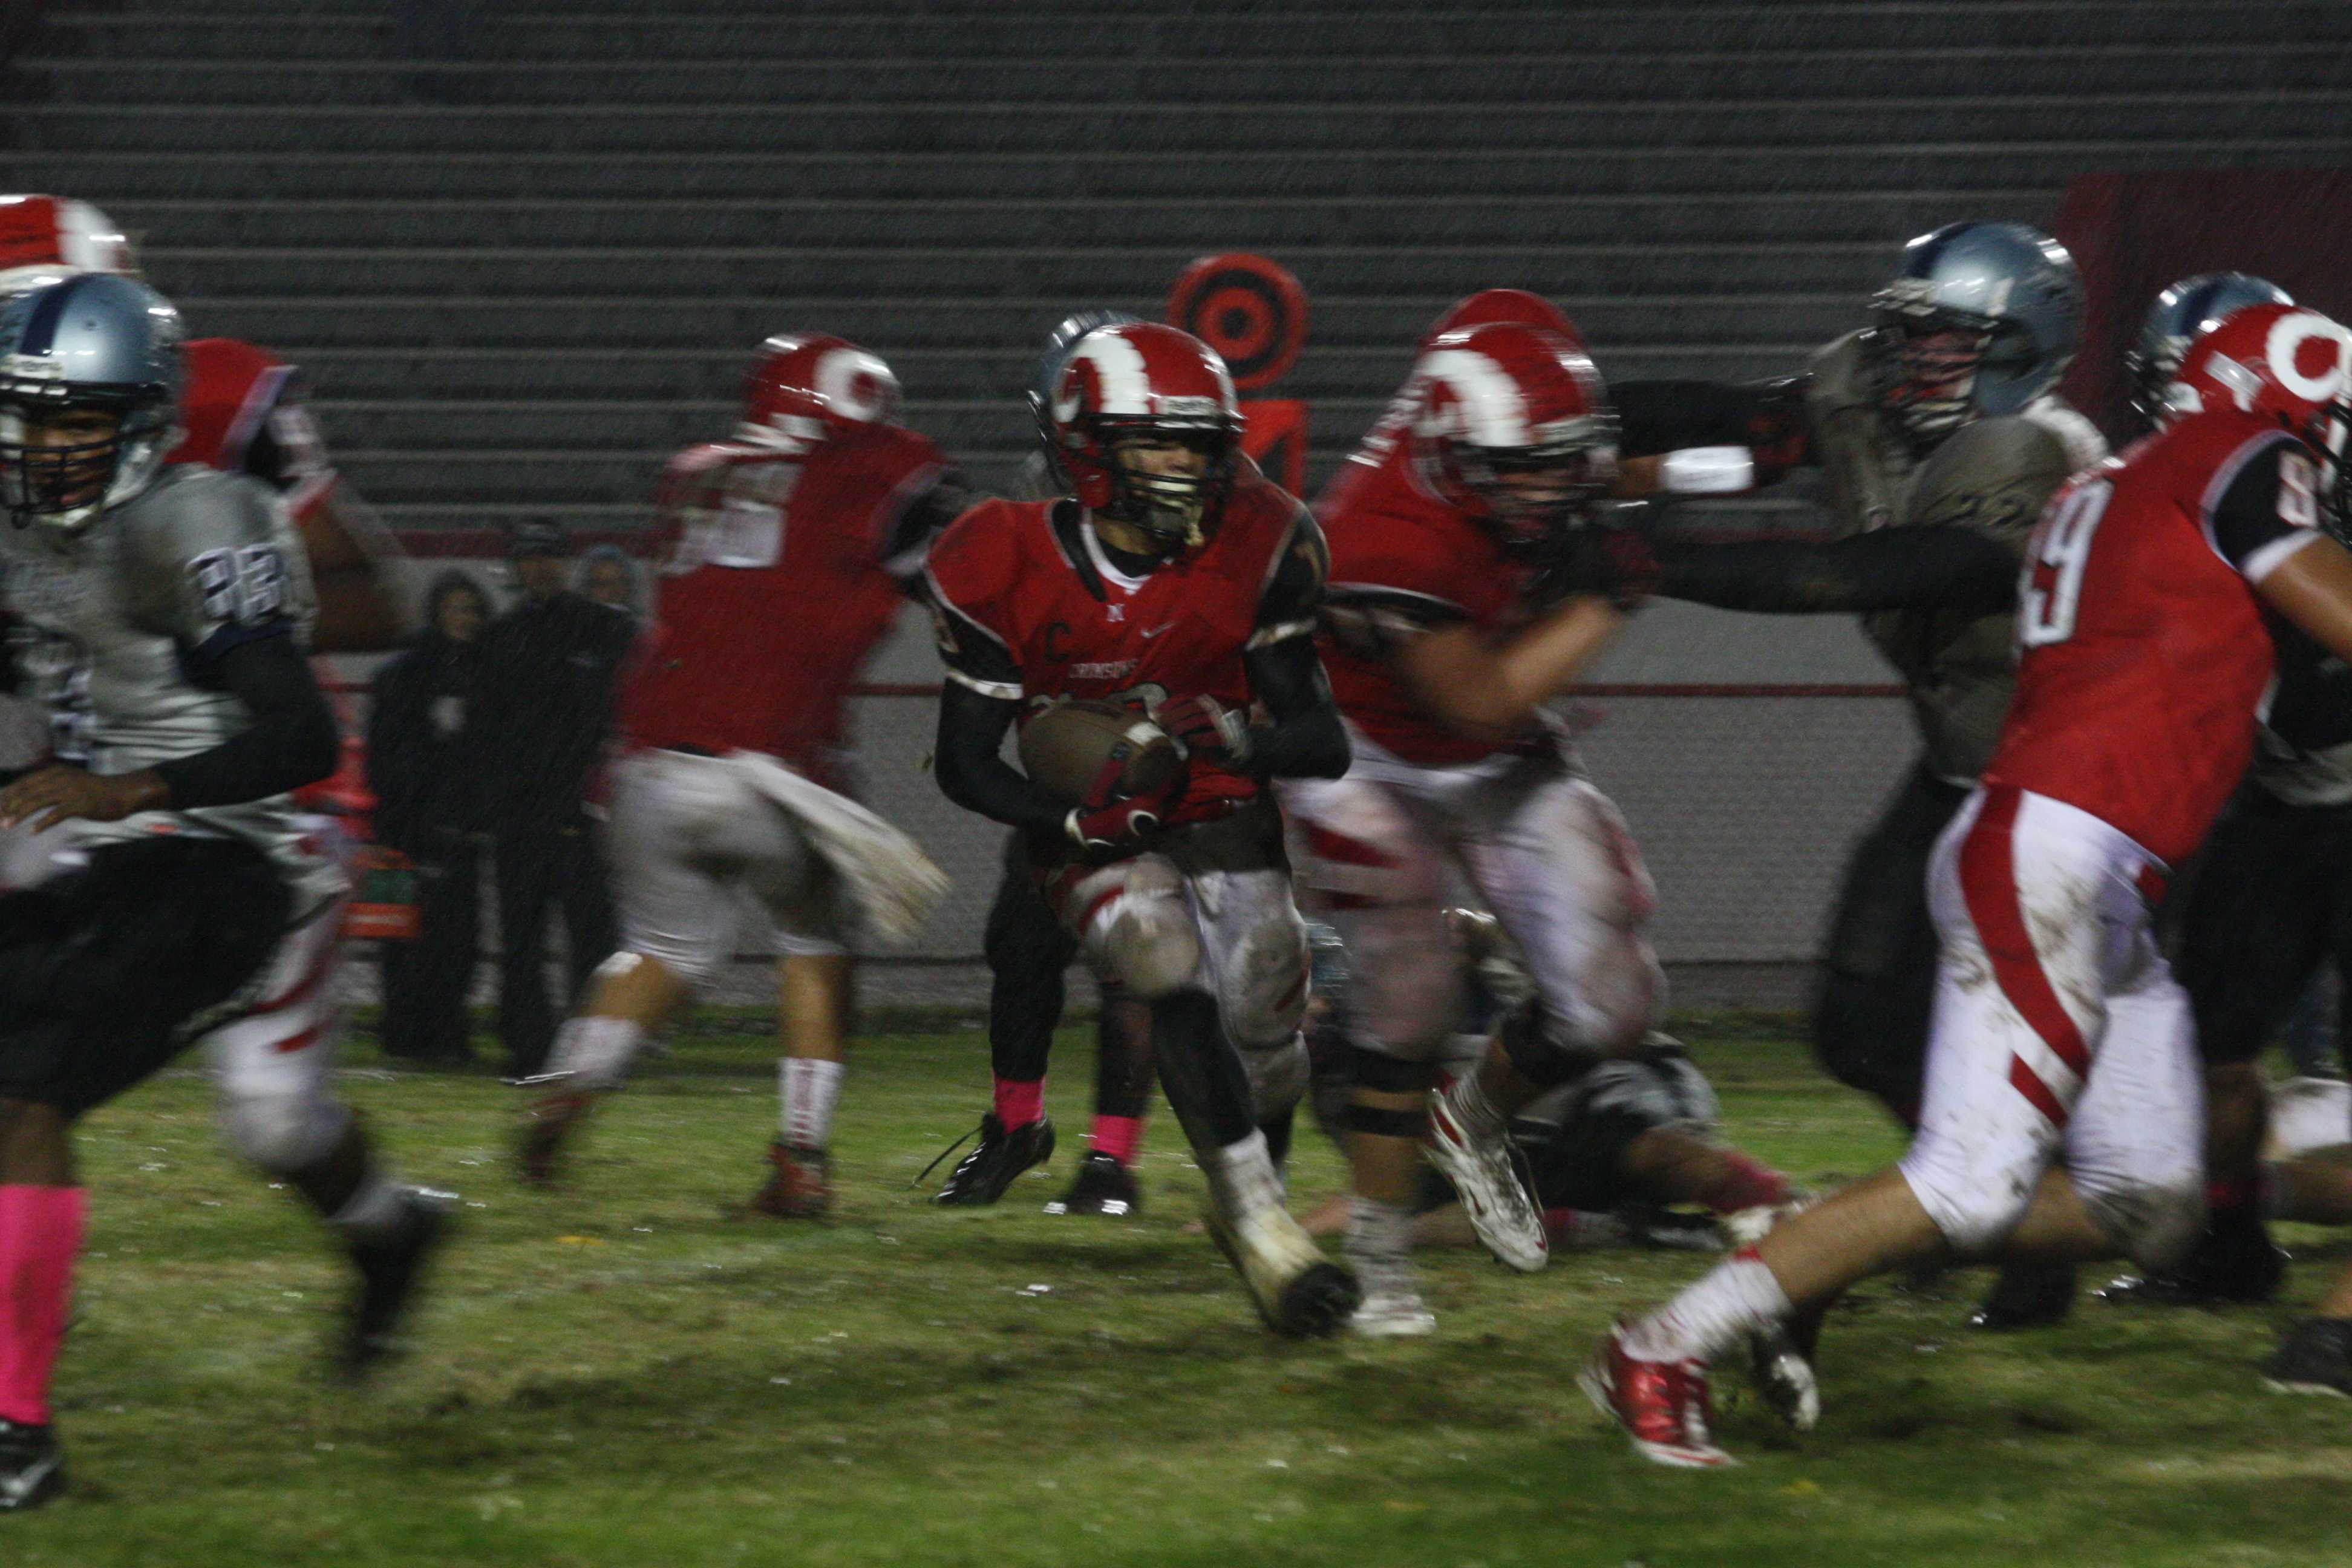 Dishan Romine (12) runs the ball as his teammates hold off the defense. photo by Destony Curry